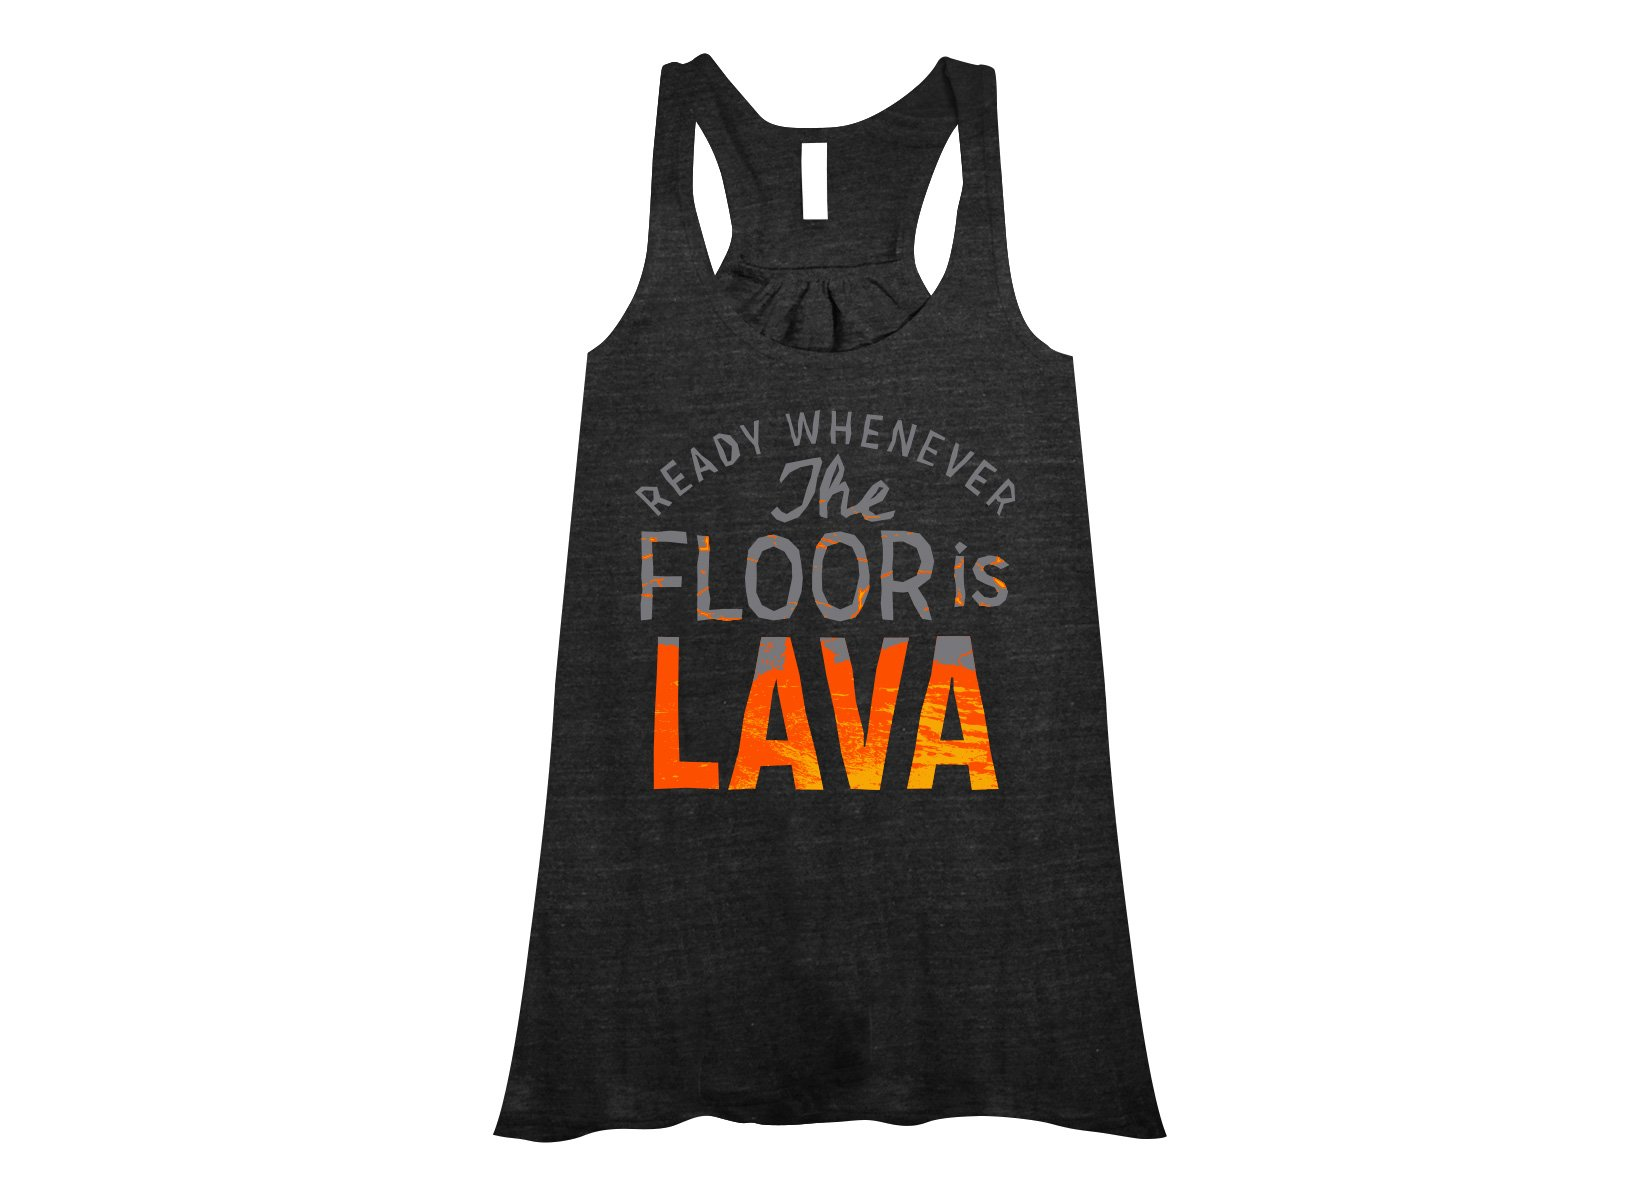 The Floor Is Lava on Womens Tanks T-Shirt